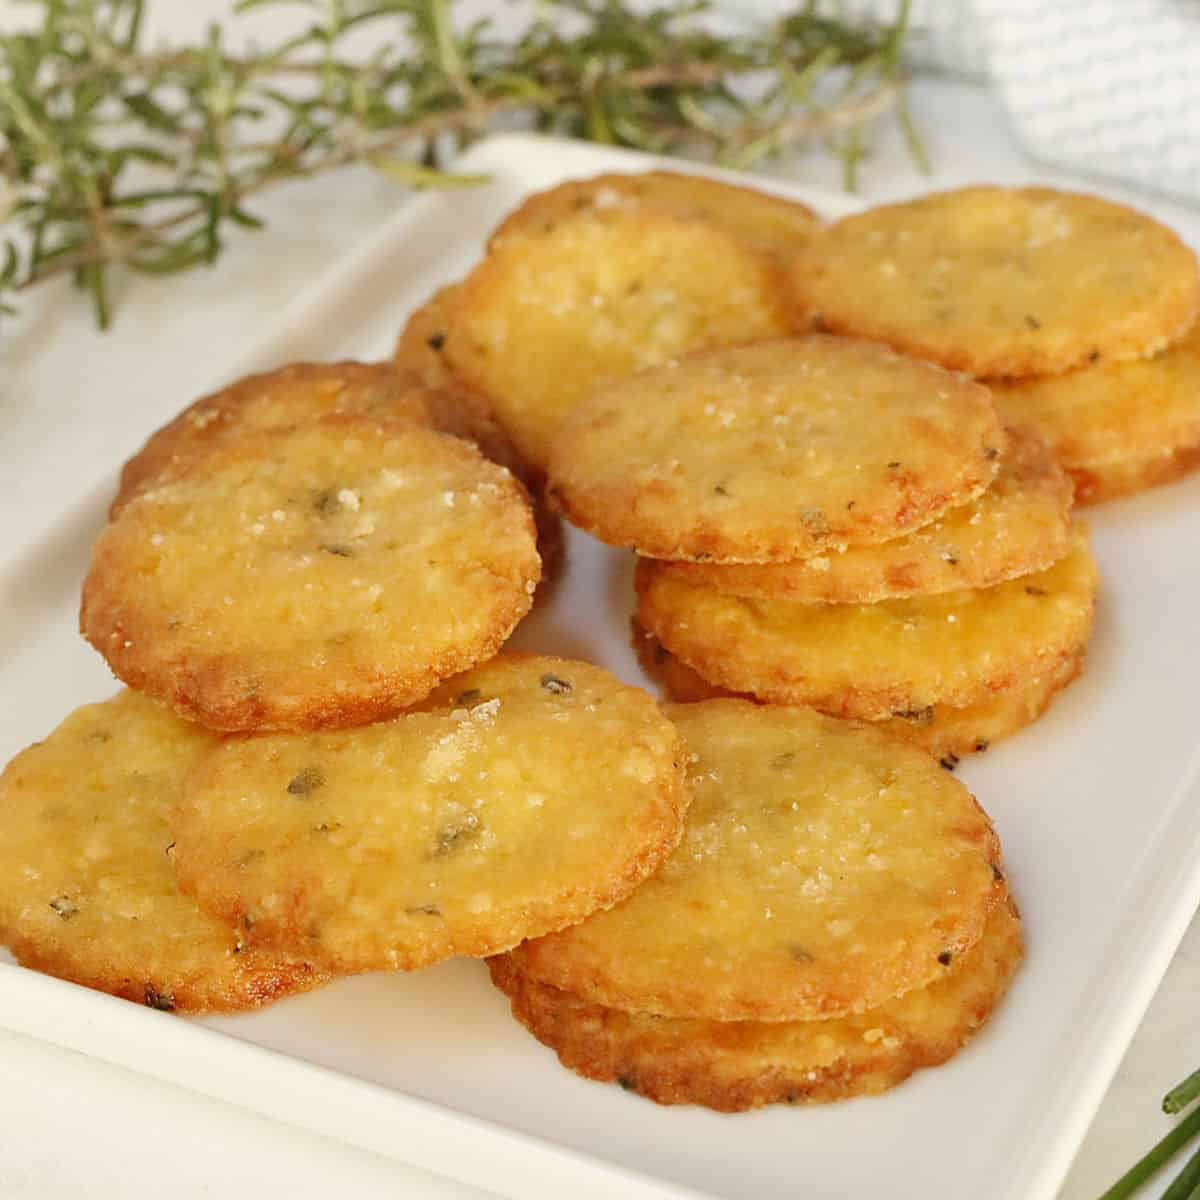 A white tray with baked cheese crackers.